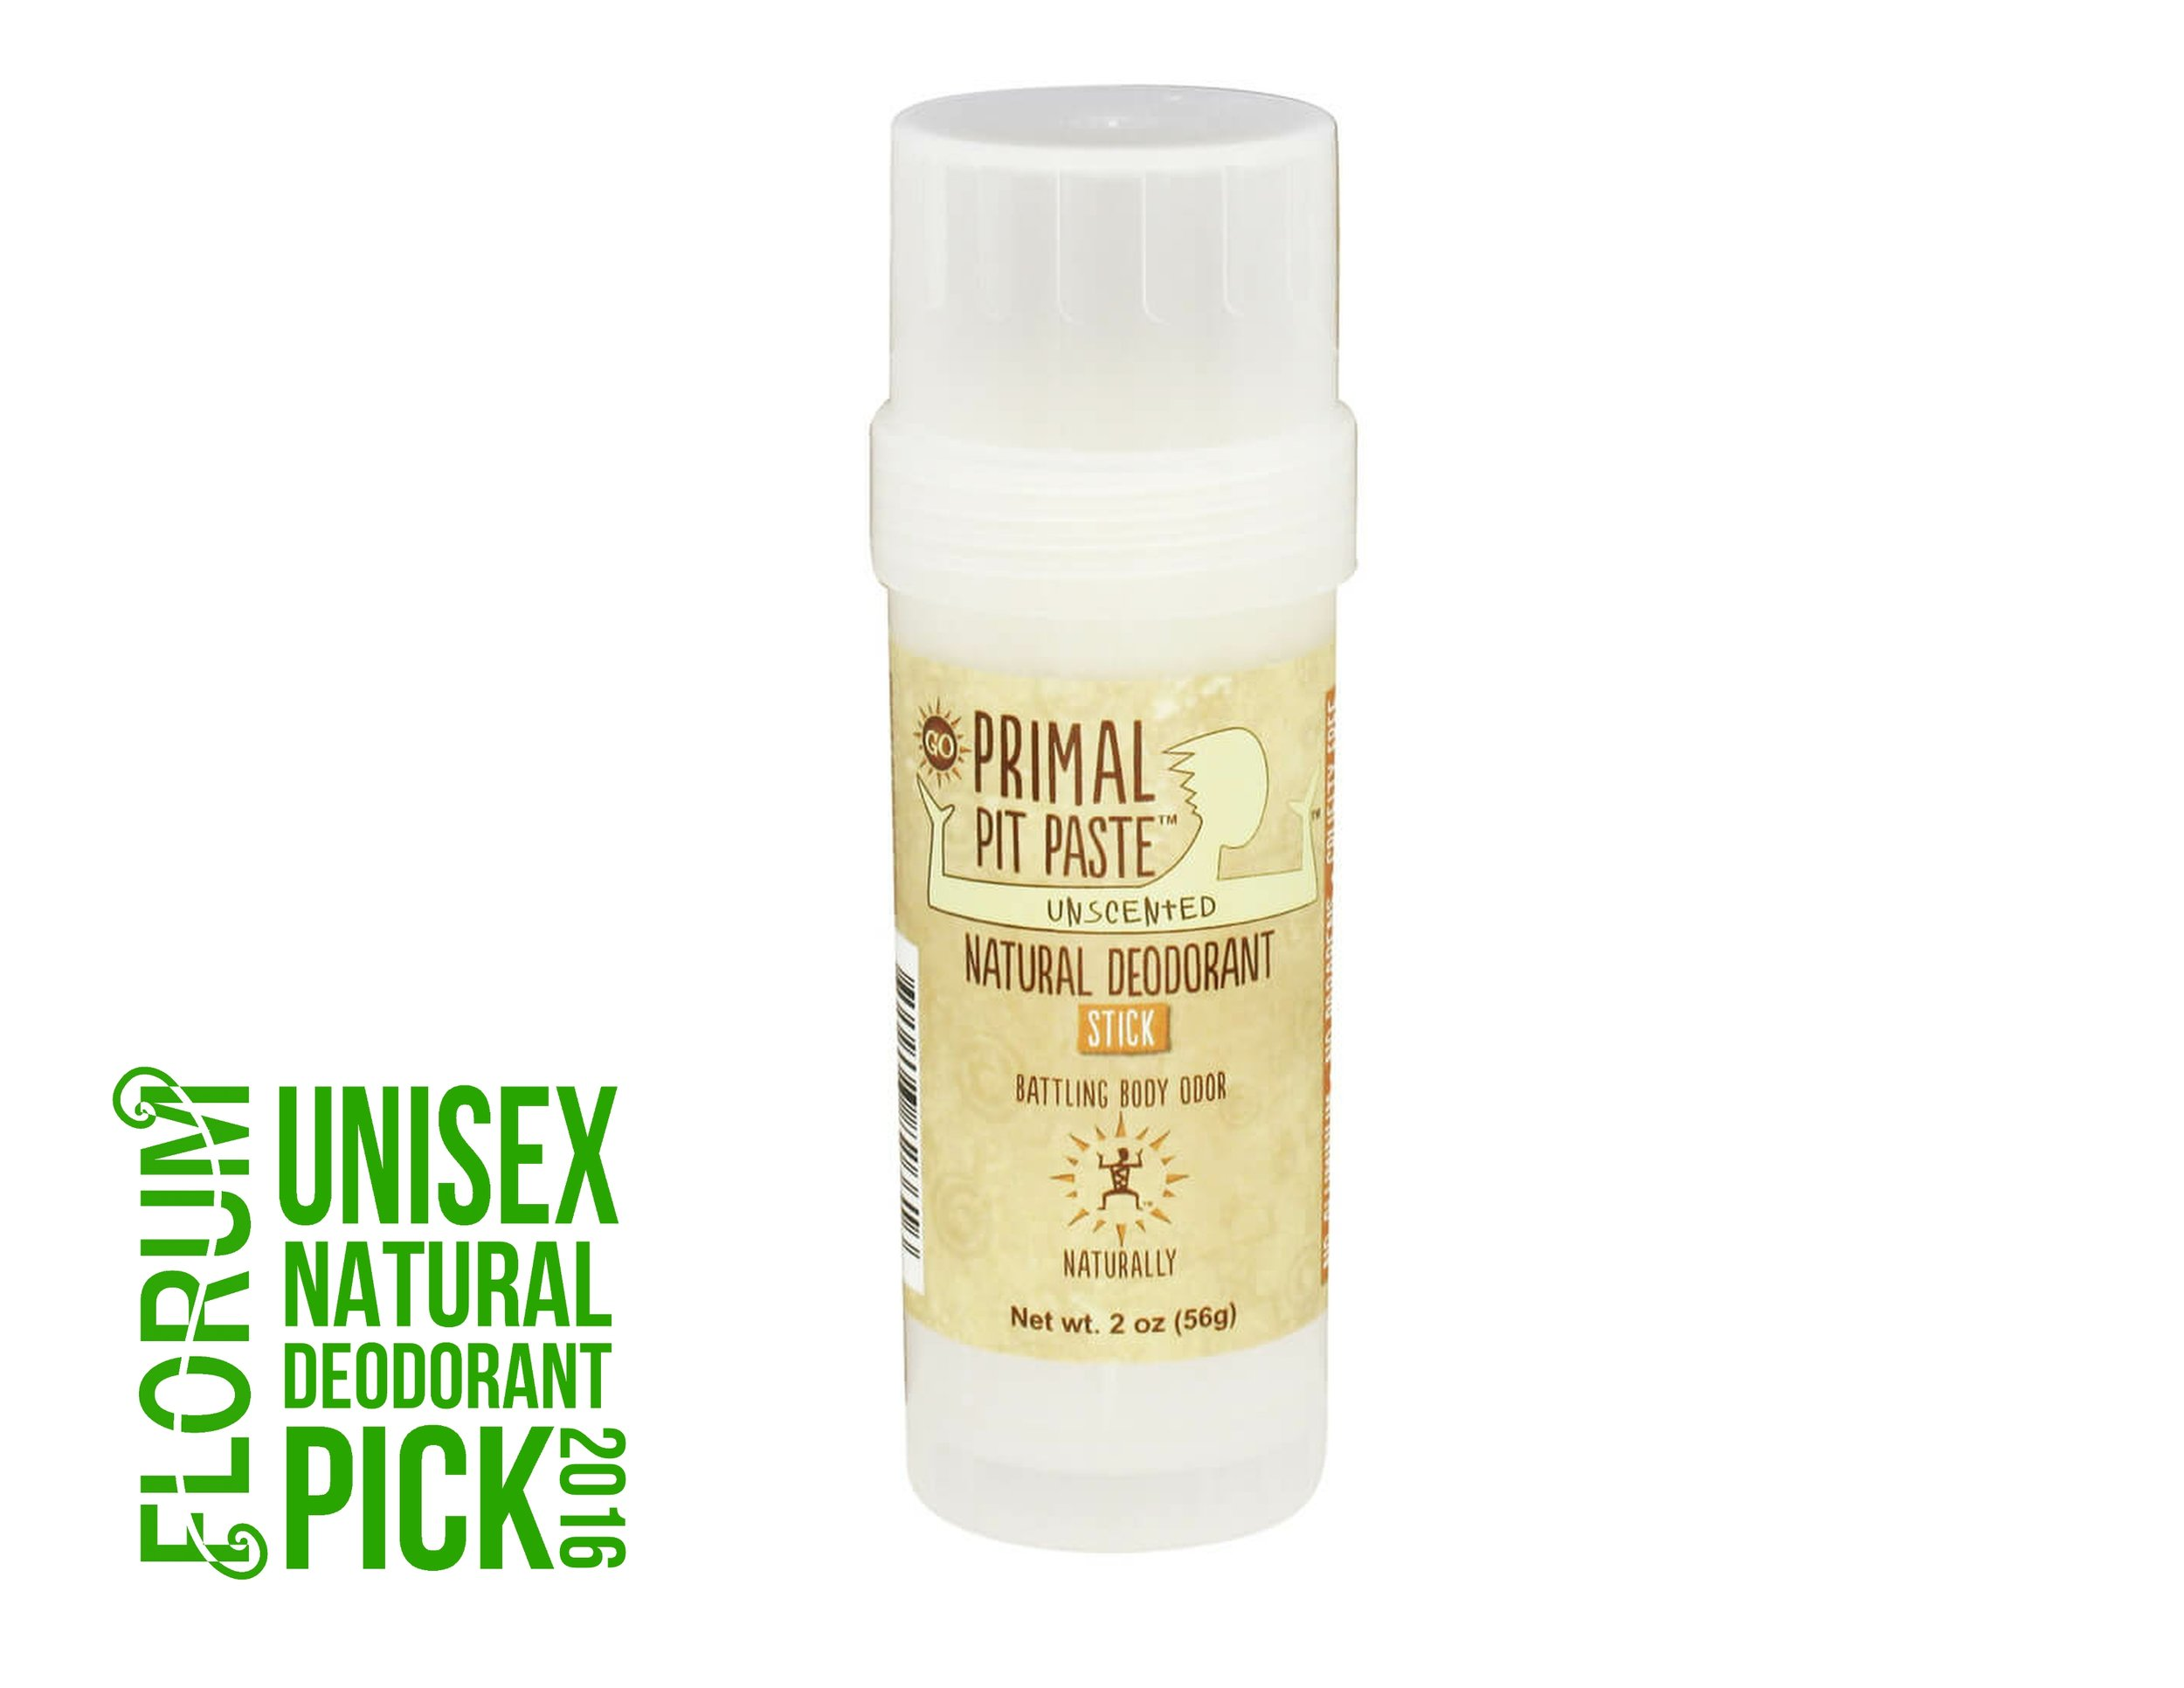 Primal Pit Paste Unscented Organic Natural Deodorant - Florum Fashion Magazine - Green Beauty - Noelle Lynne -Best Non Toxic DEO